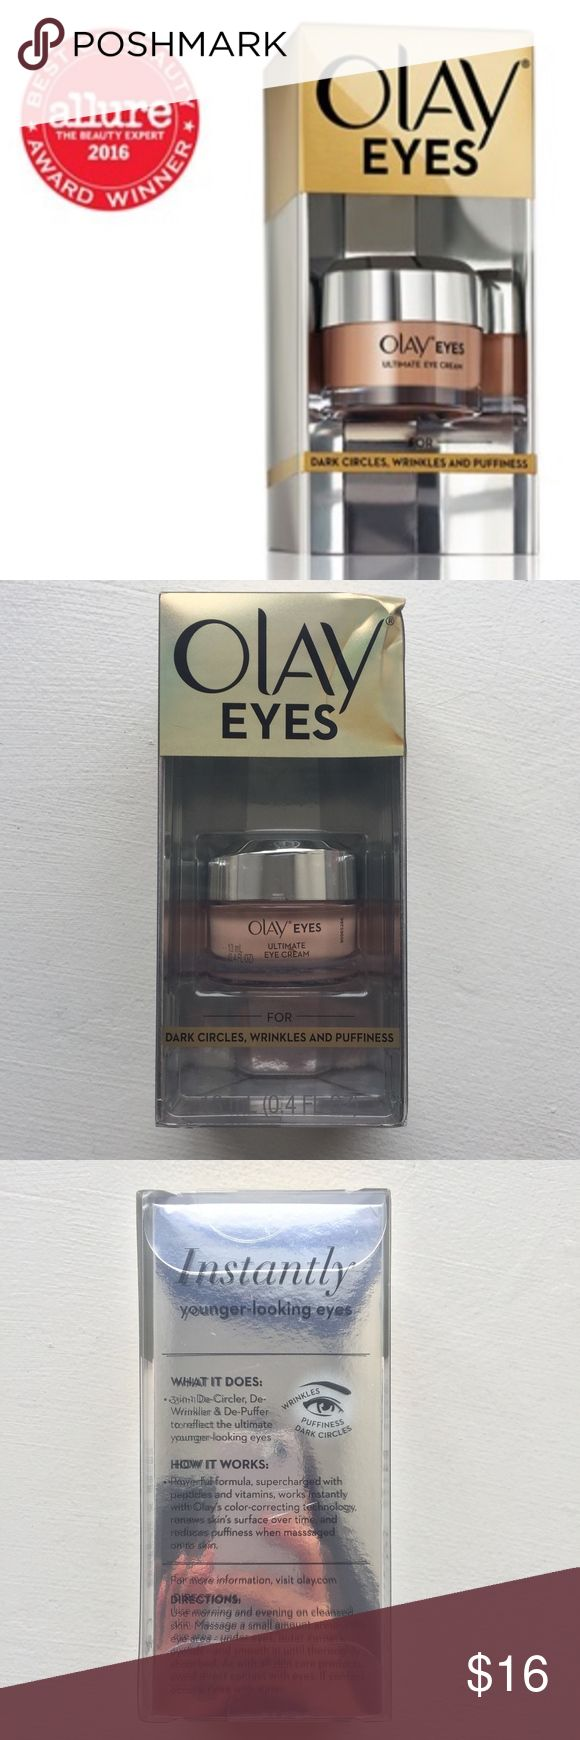 NEW - Olay Ultimate Eye Cream - 18ml0.4 fl oz NEW - Olay Ultimate Eye Cream - 18ml0.4 fl oz  - Ultimate Eye Cream fights wrinkles, puffy eyes, and dark circles in an instant - Get the instant results of the #1 Prestige Eye Cream without paying 2x as much – for dark circles and wrinkles - 3-in-1 Decircler, DeWrinkler and DePuffer instantly reduces the appearance of fine lines and wrinkles - Contains Olays color-correcting technology that acts as a touch of concealer - Powerful formula…